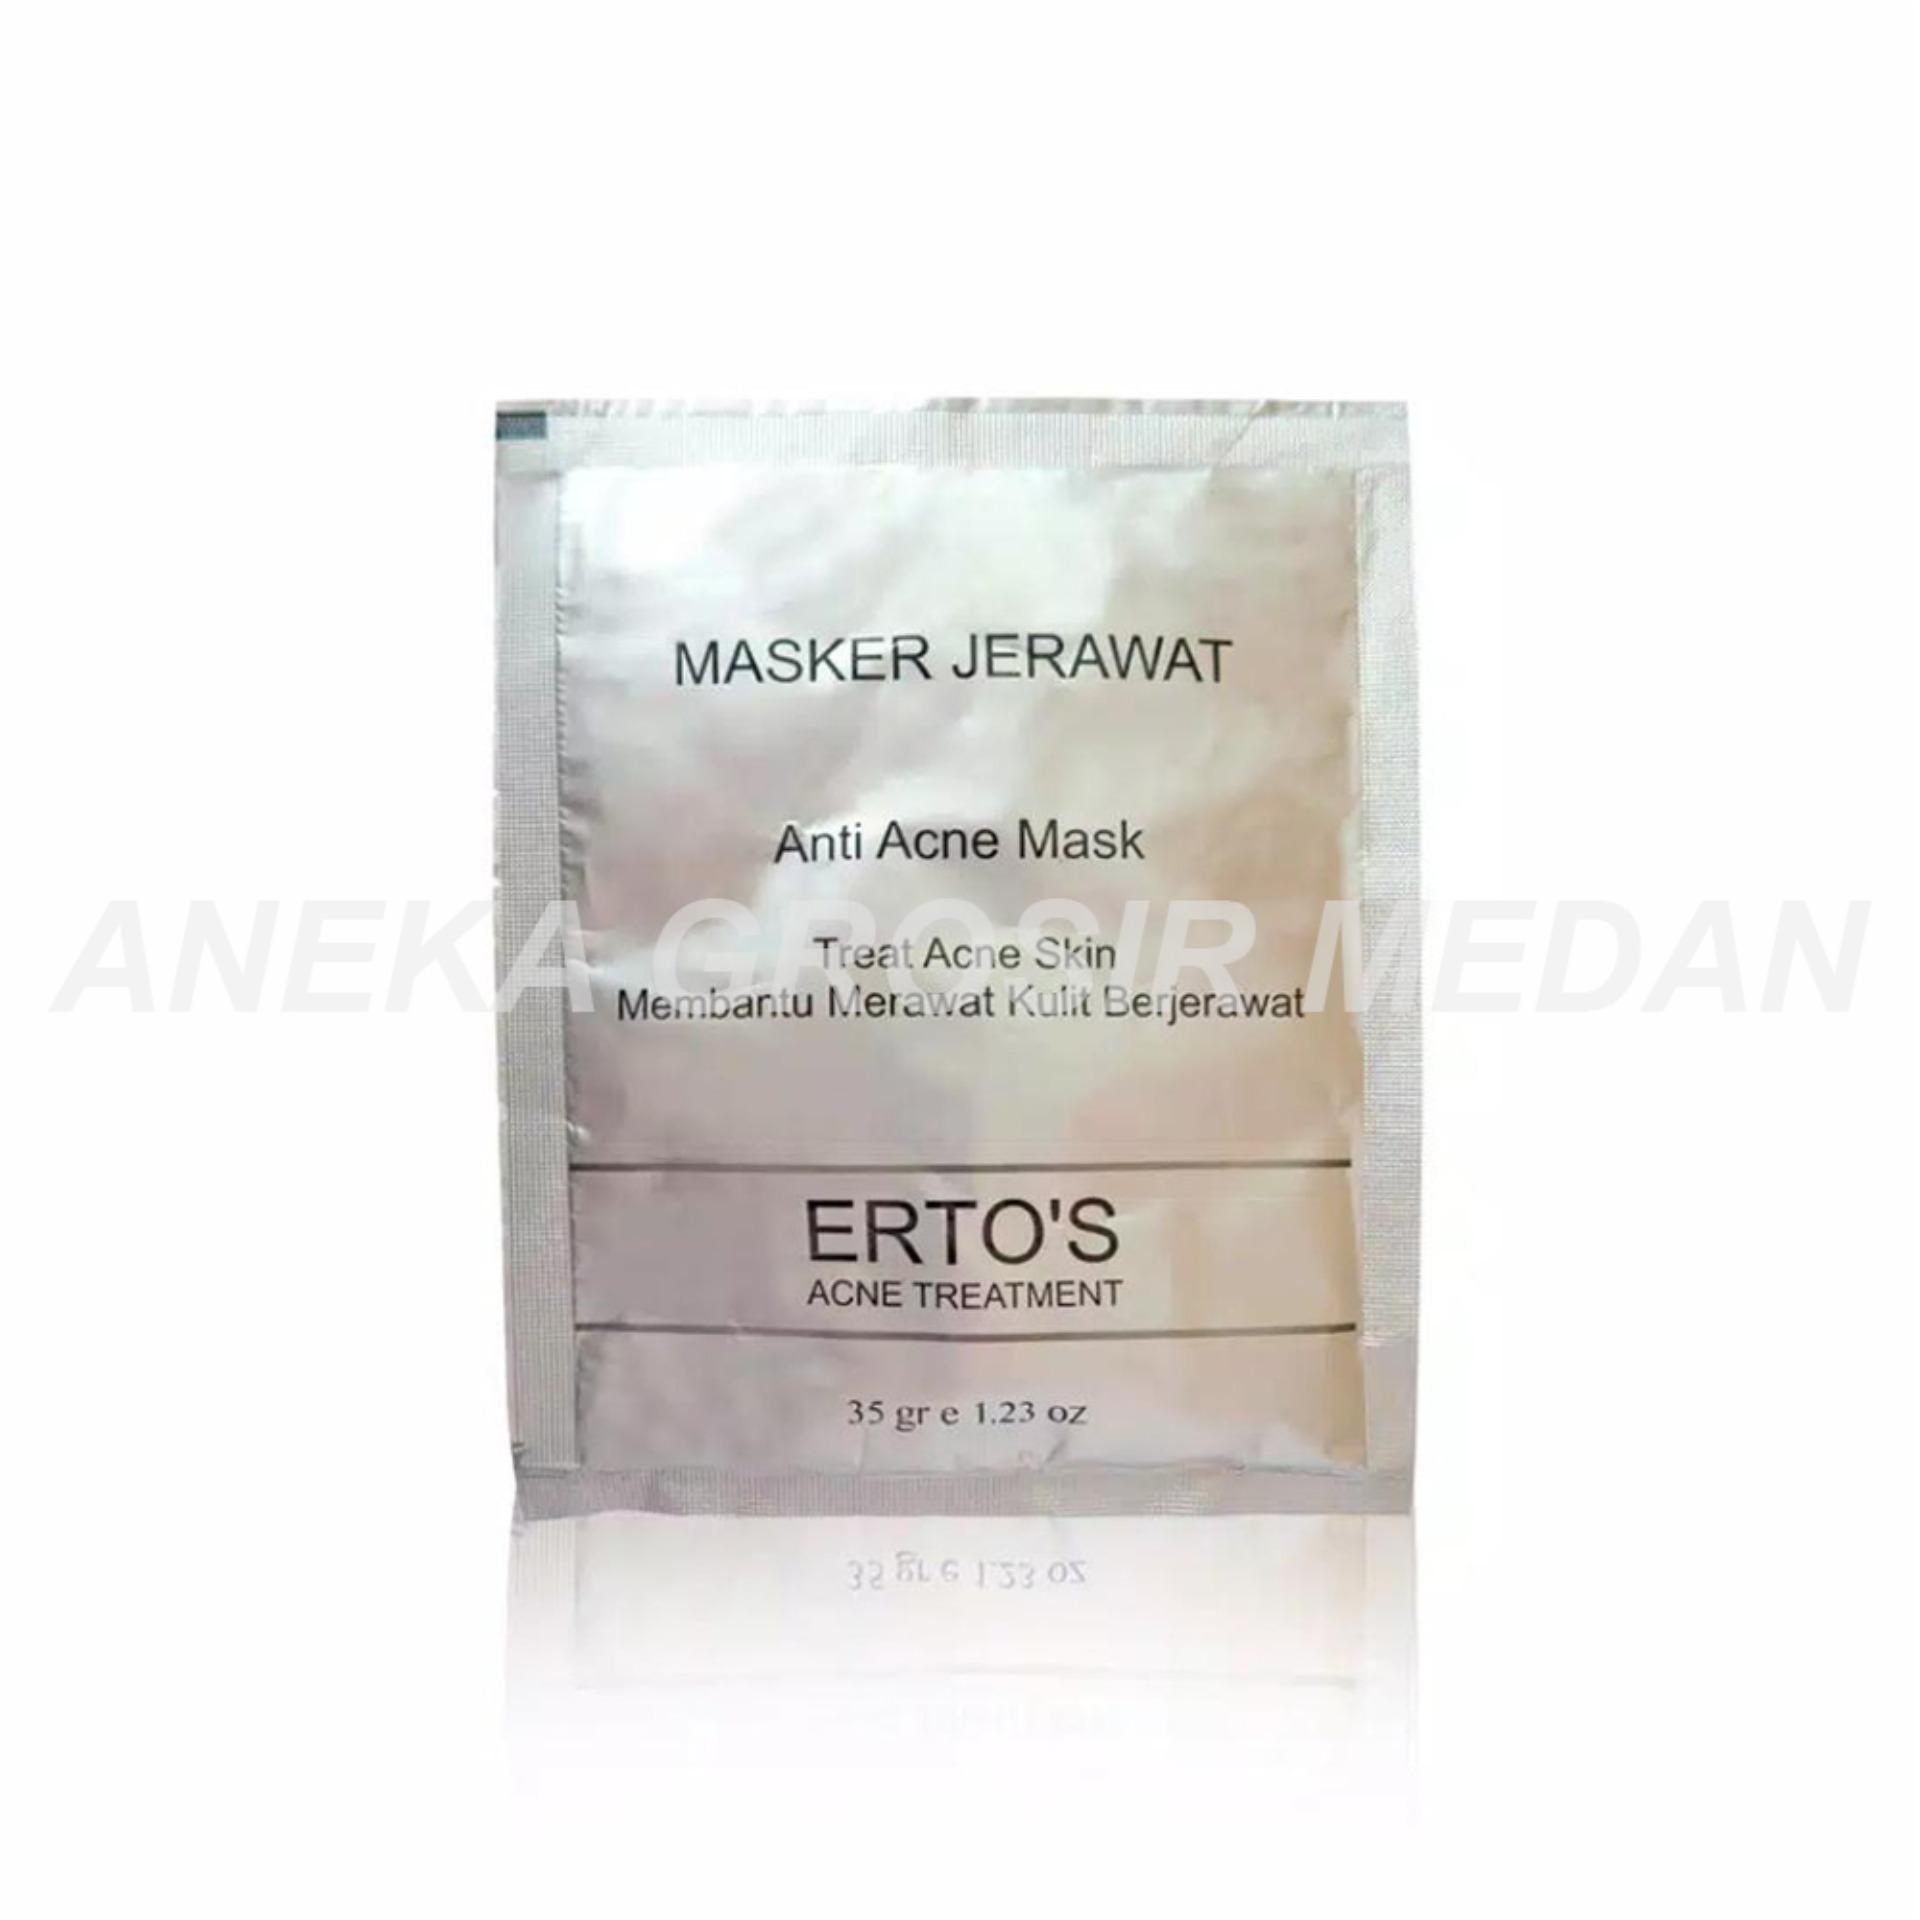 Beli Bioaqua Carbon Active Charcoal Black Mask Masker Pengangkat Komedo Ertos Acne Treatment